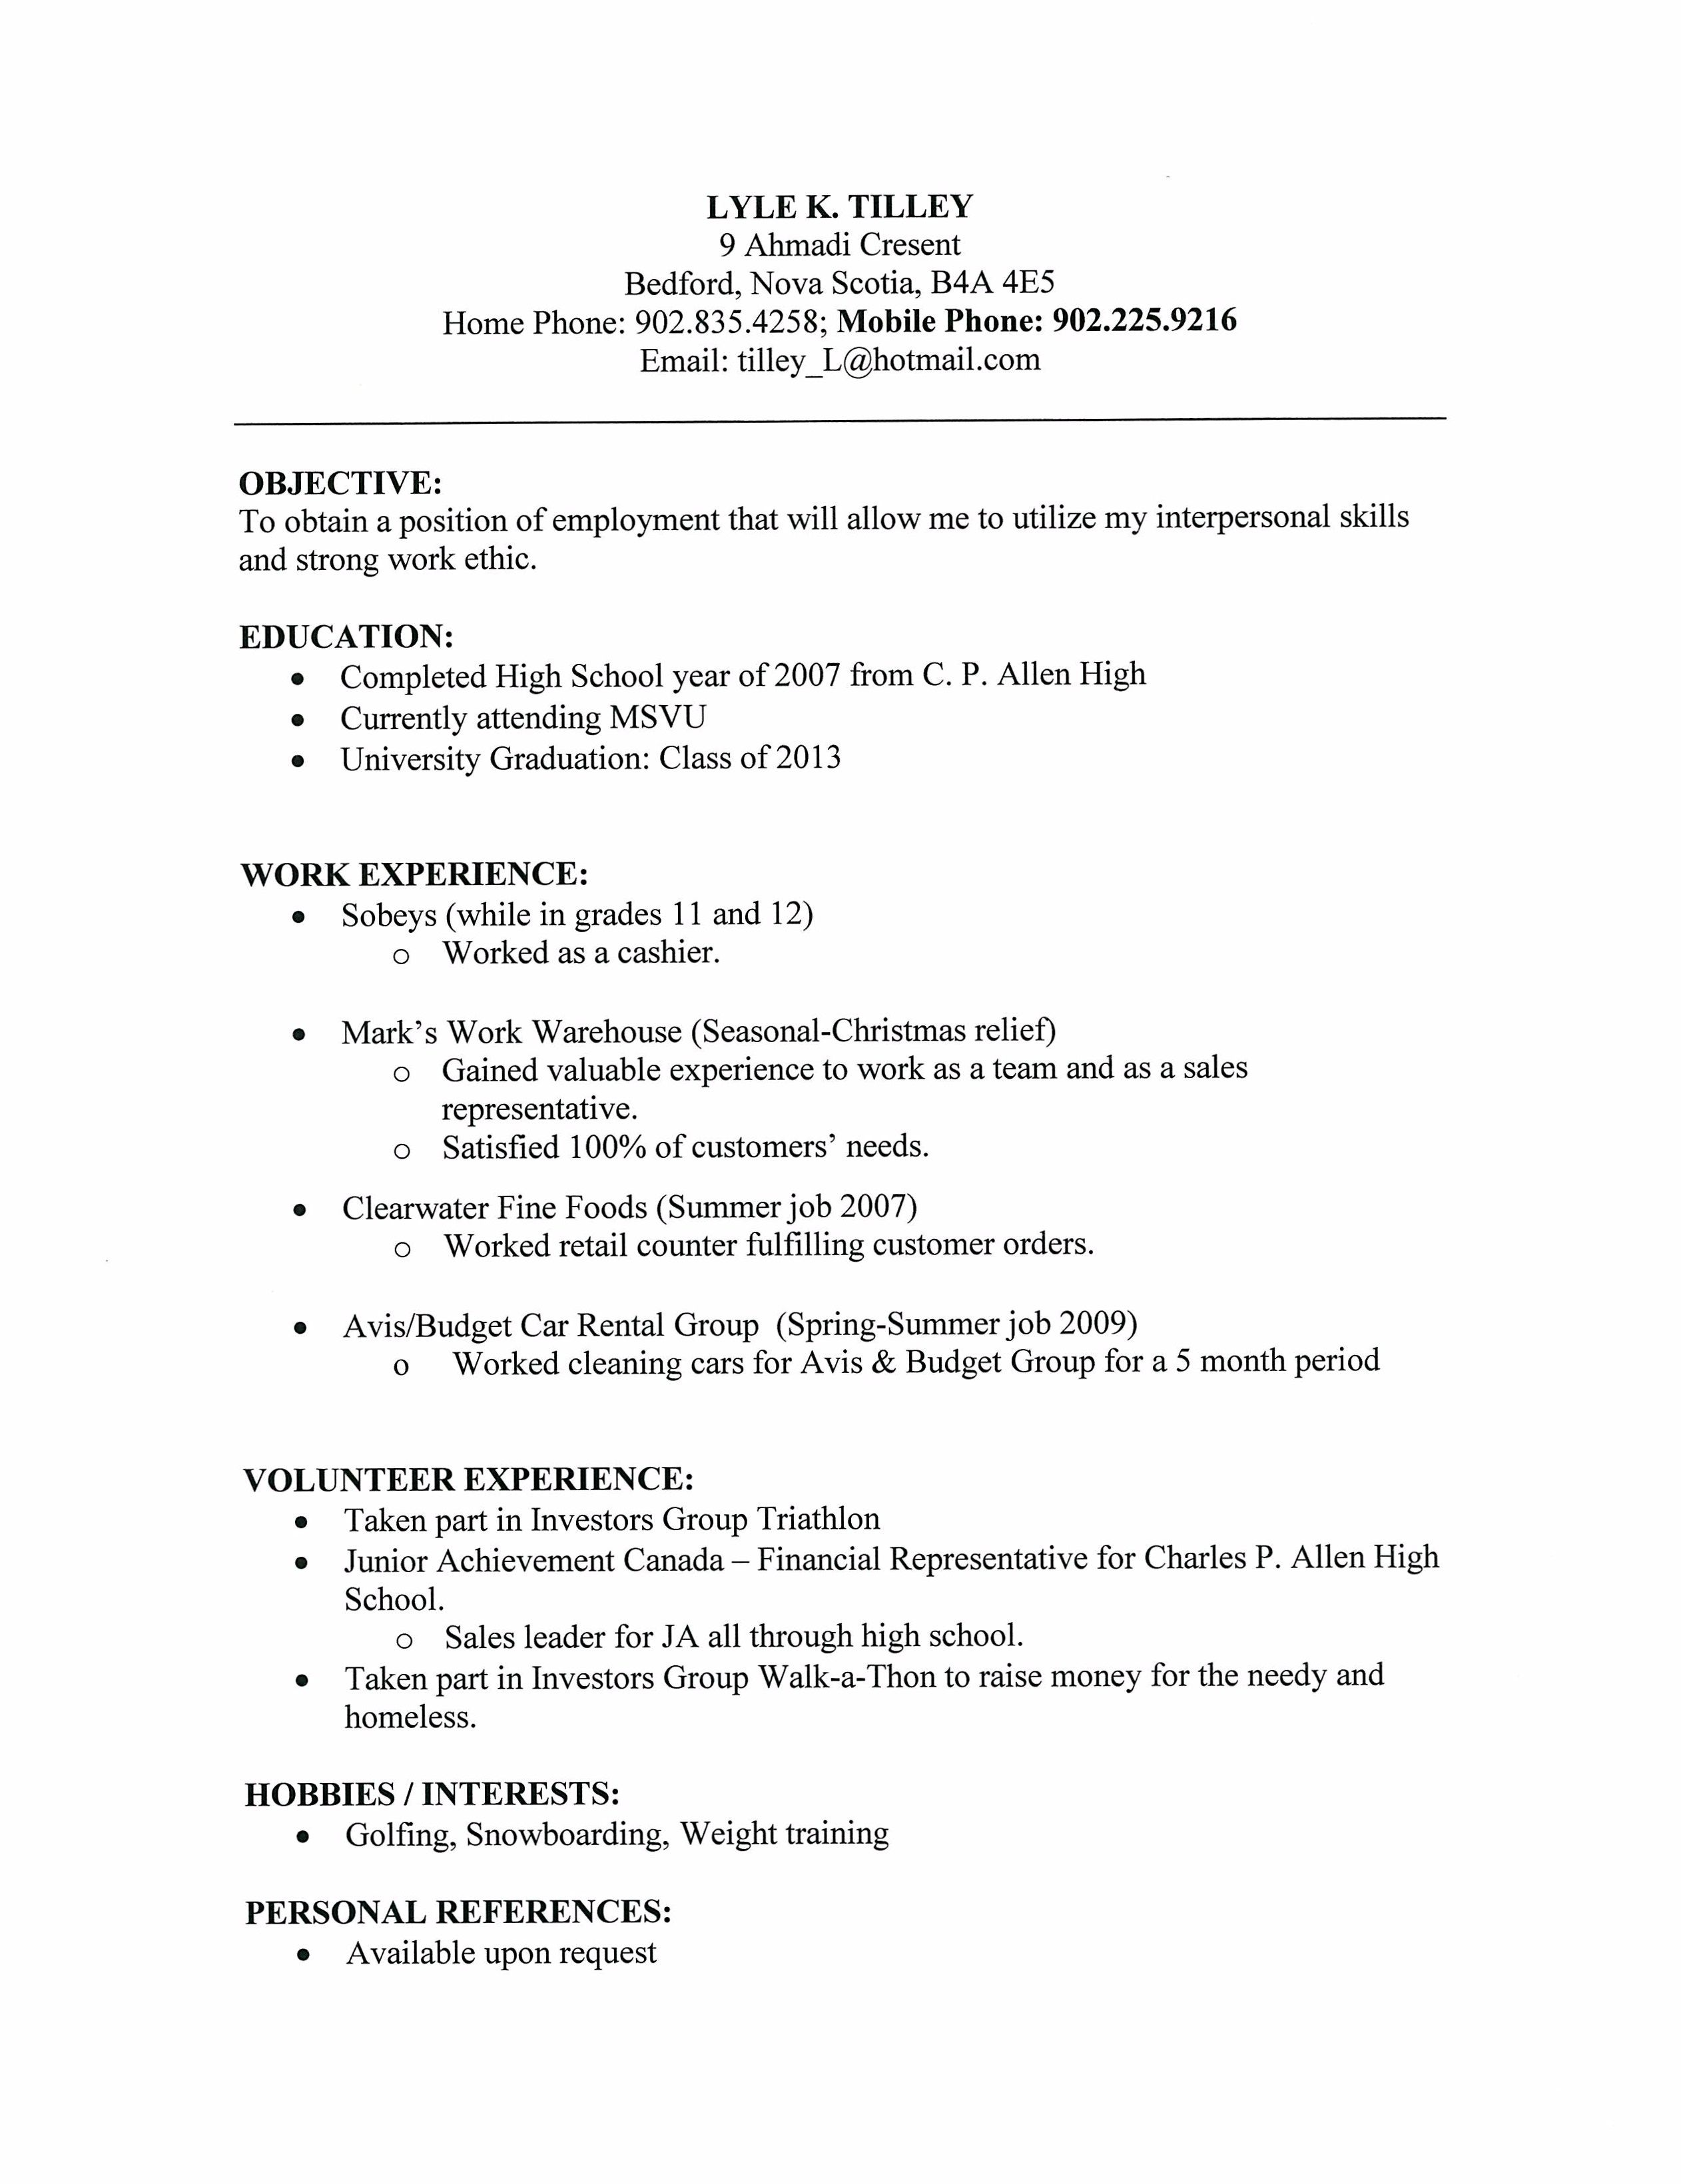 Resume Amp Cover Letter Lyle Tilley Template Http Webdesign Format